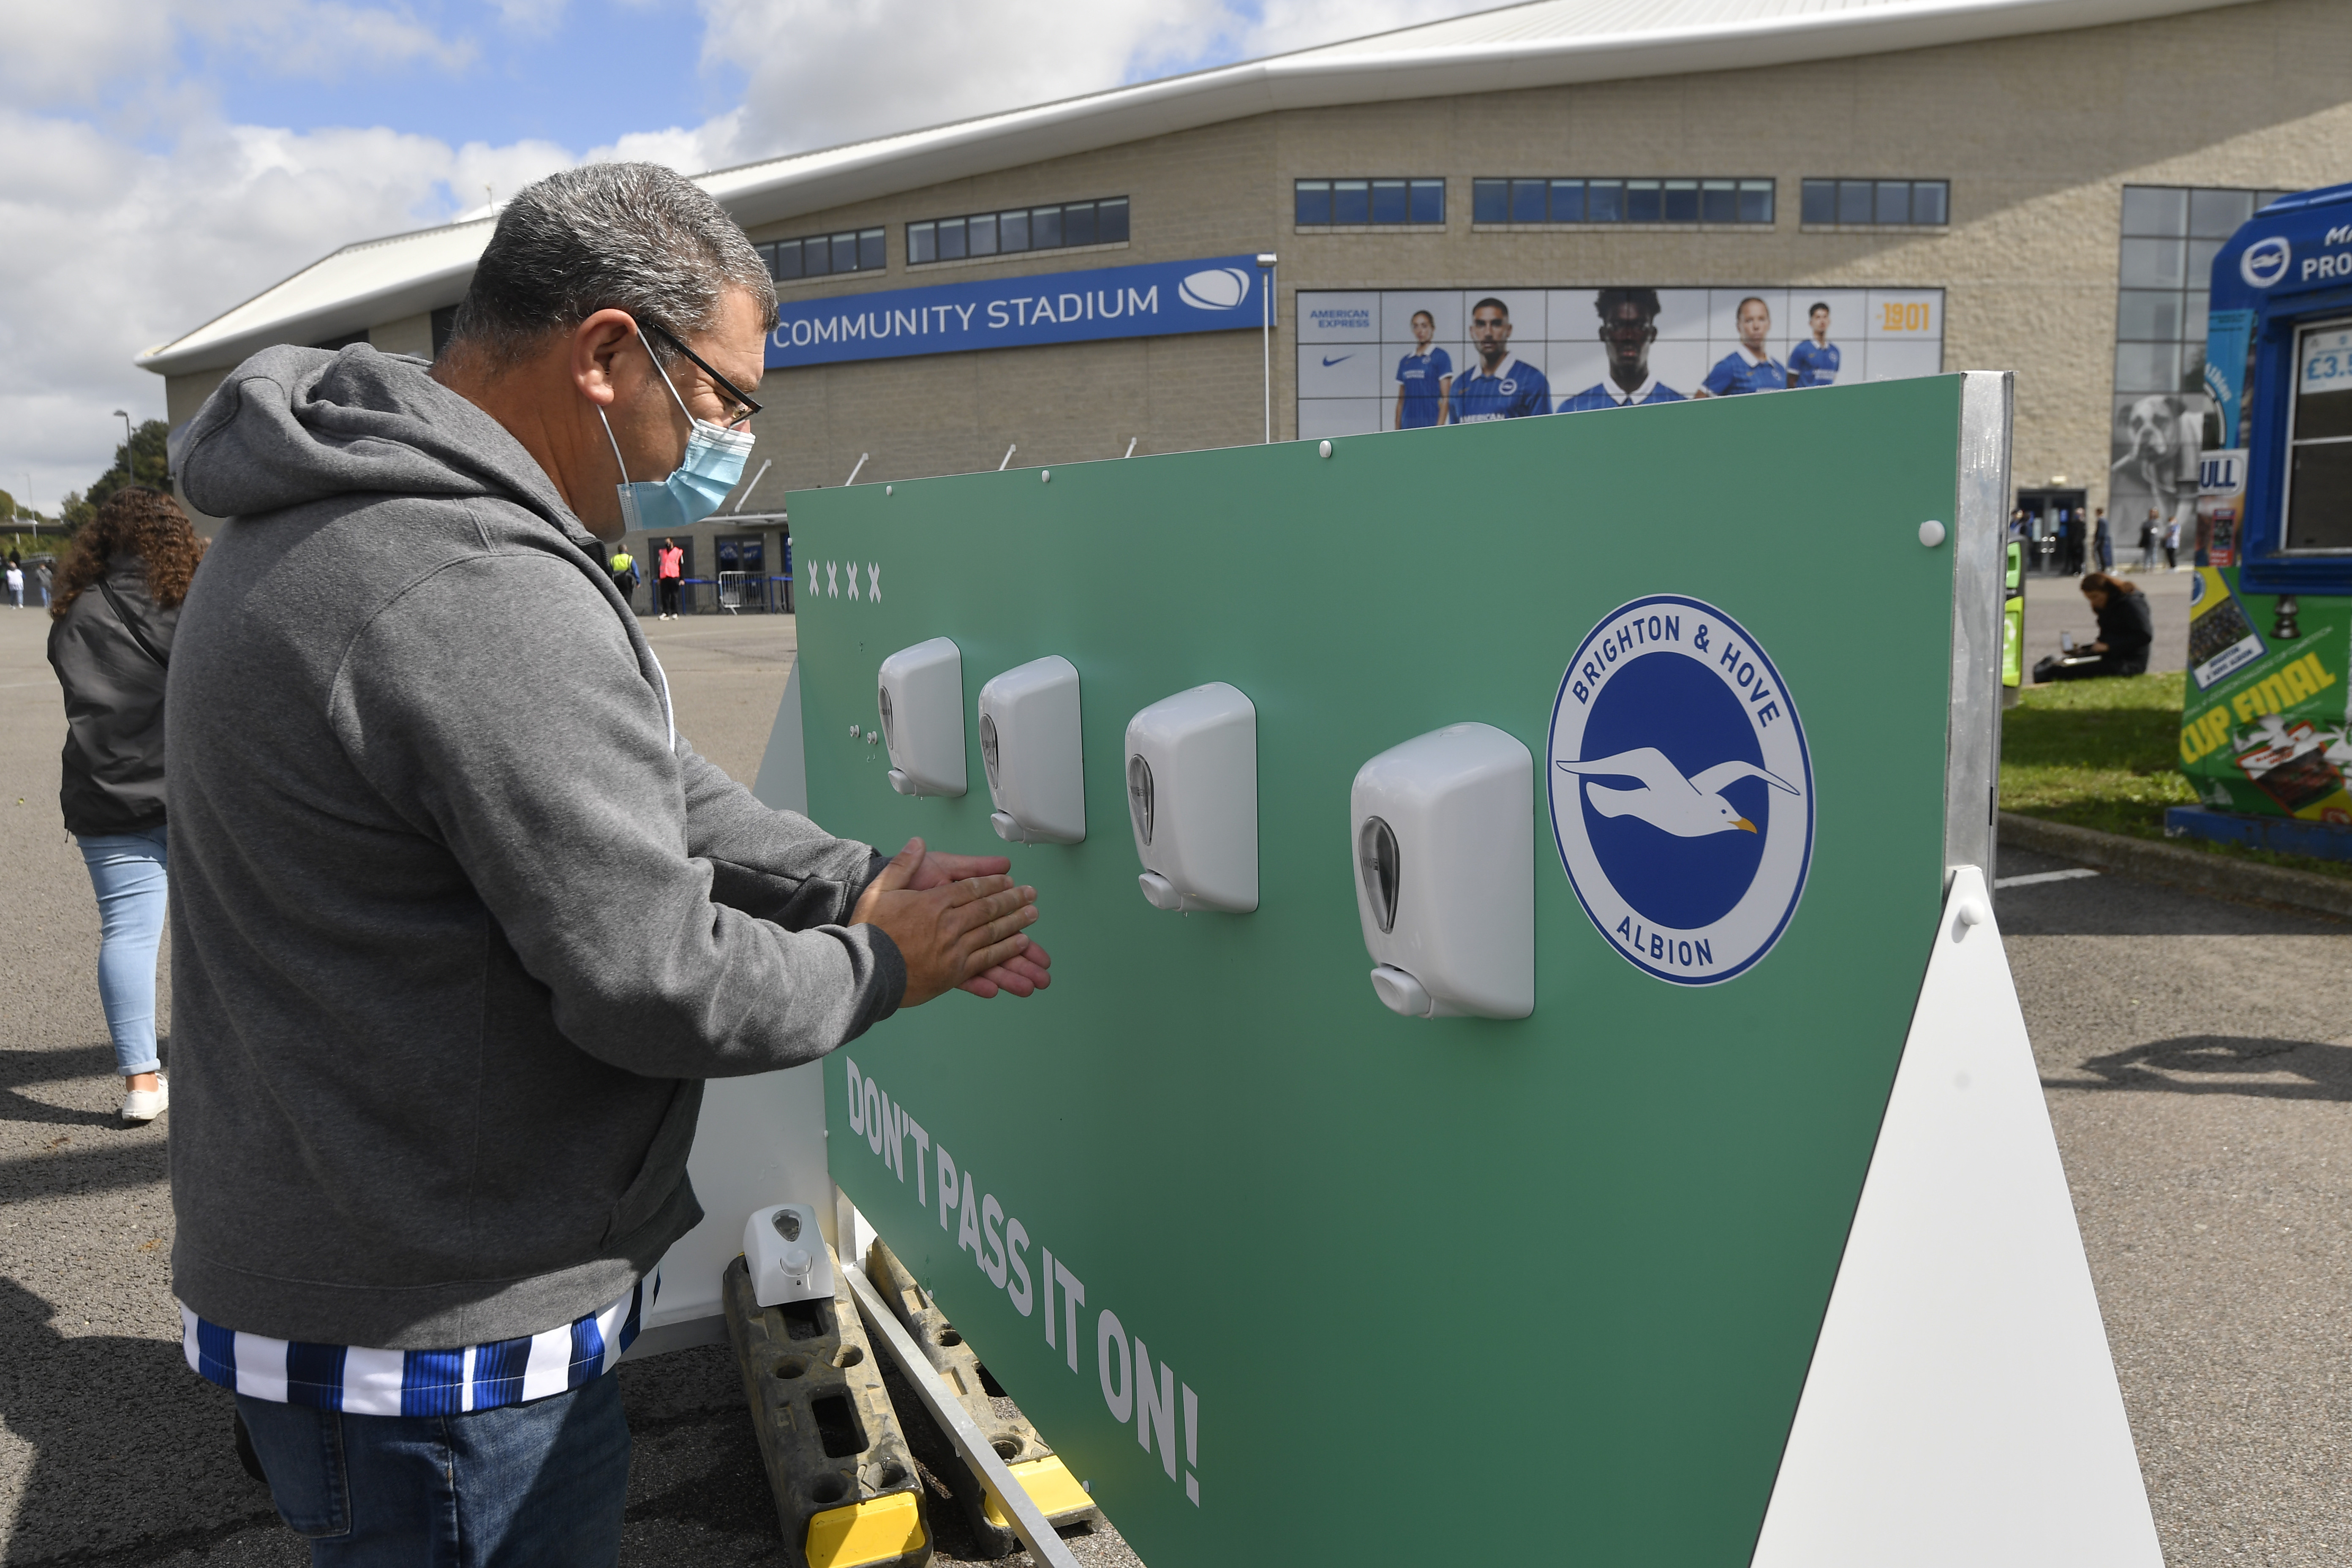 Soccer Football - Pre Season Friendly - Brighton & Hove Albion v Chelsea - The American Express Community Stadium, Brighton, Britain - August 29, 2020  A fan wearing a mask uses a hand sanitiser station outside the stadium before the match, as fans are allowed into a stadium following the outbreak of the coronavirus disease (COVID-19)